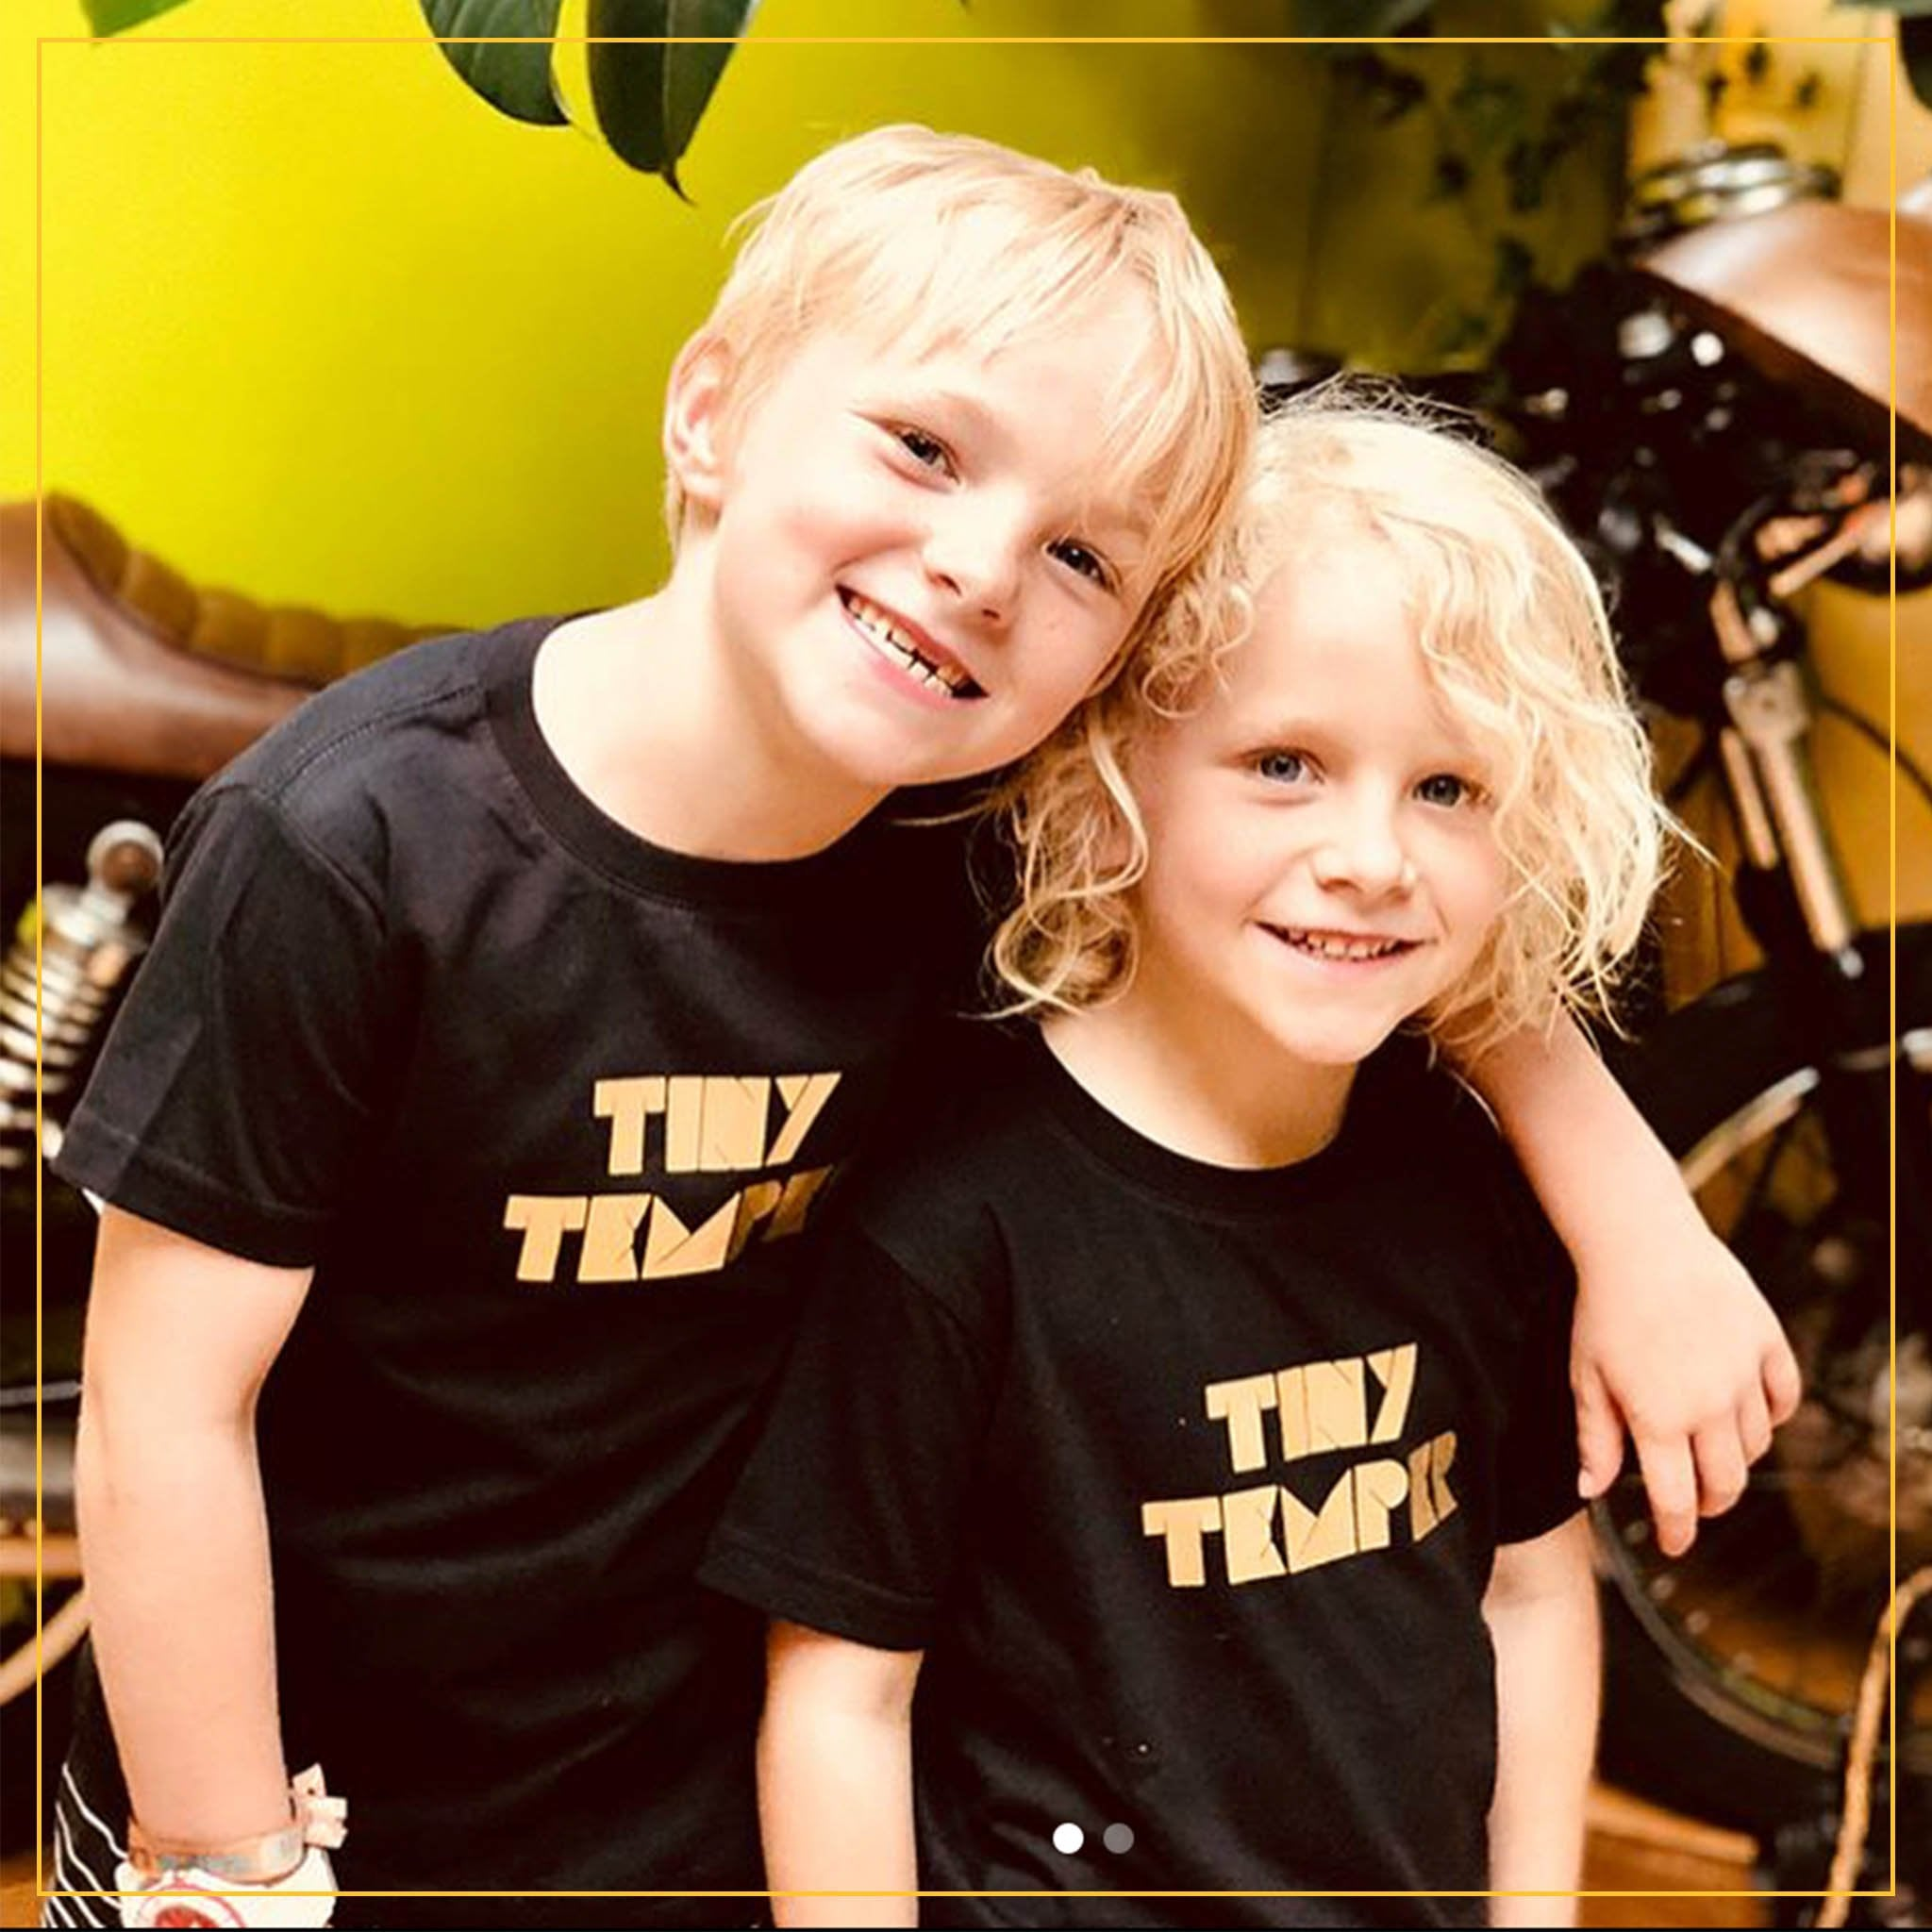 boy and girl in black novelty tees with 'tiny temper' print